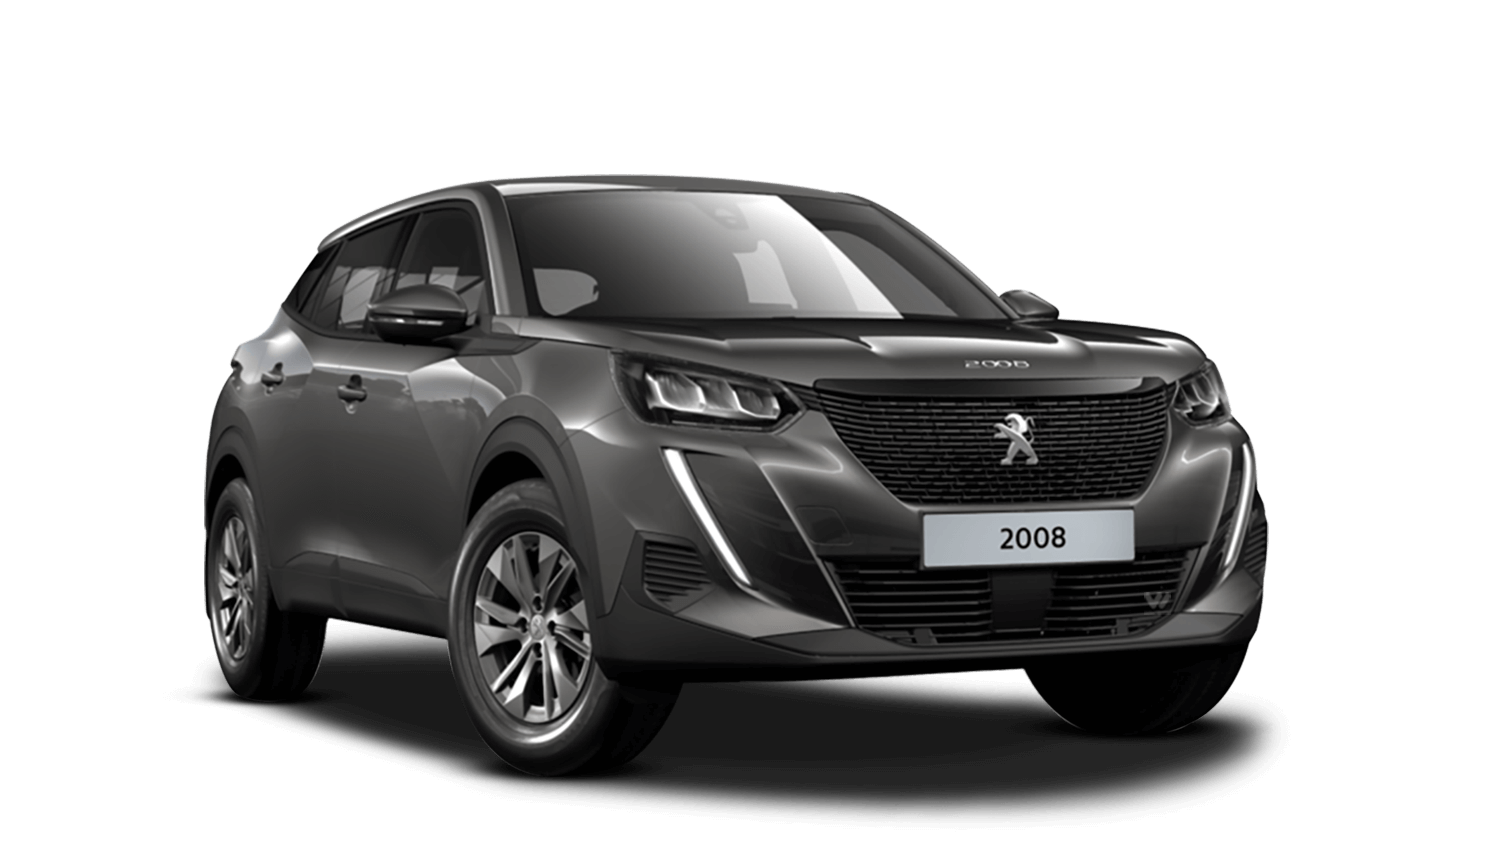 Nimbus Grey All-new Peugeot 2008 SUV